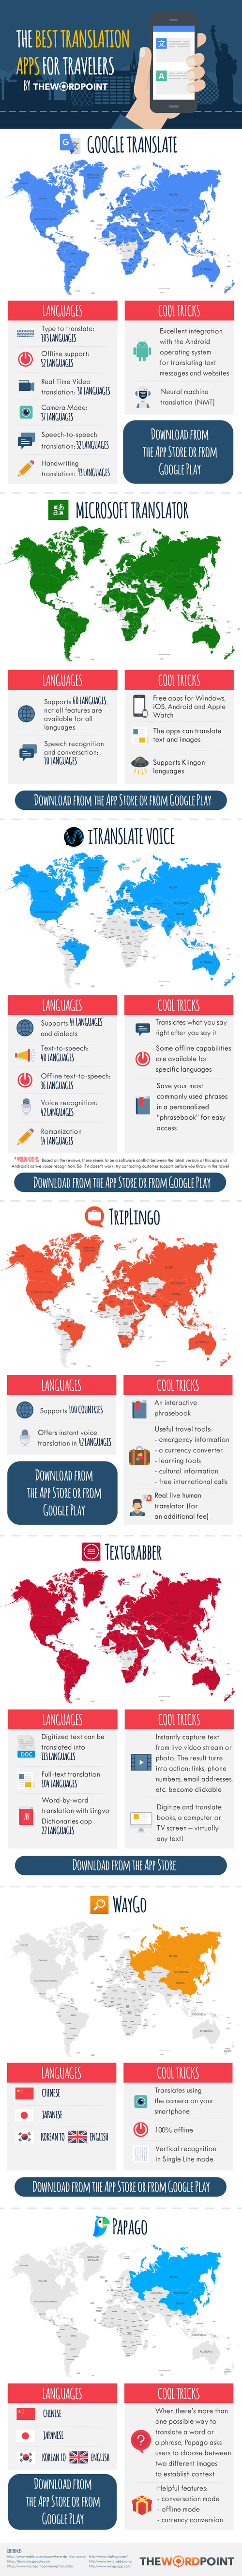 Freedom from Language Barriers: The Best Translation Apps for Travelers - Infographic